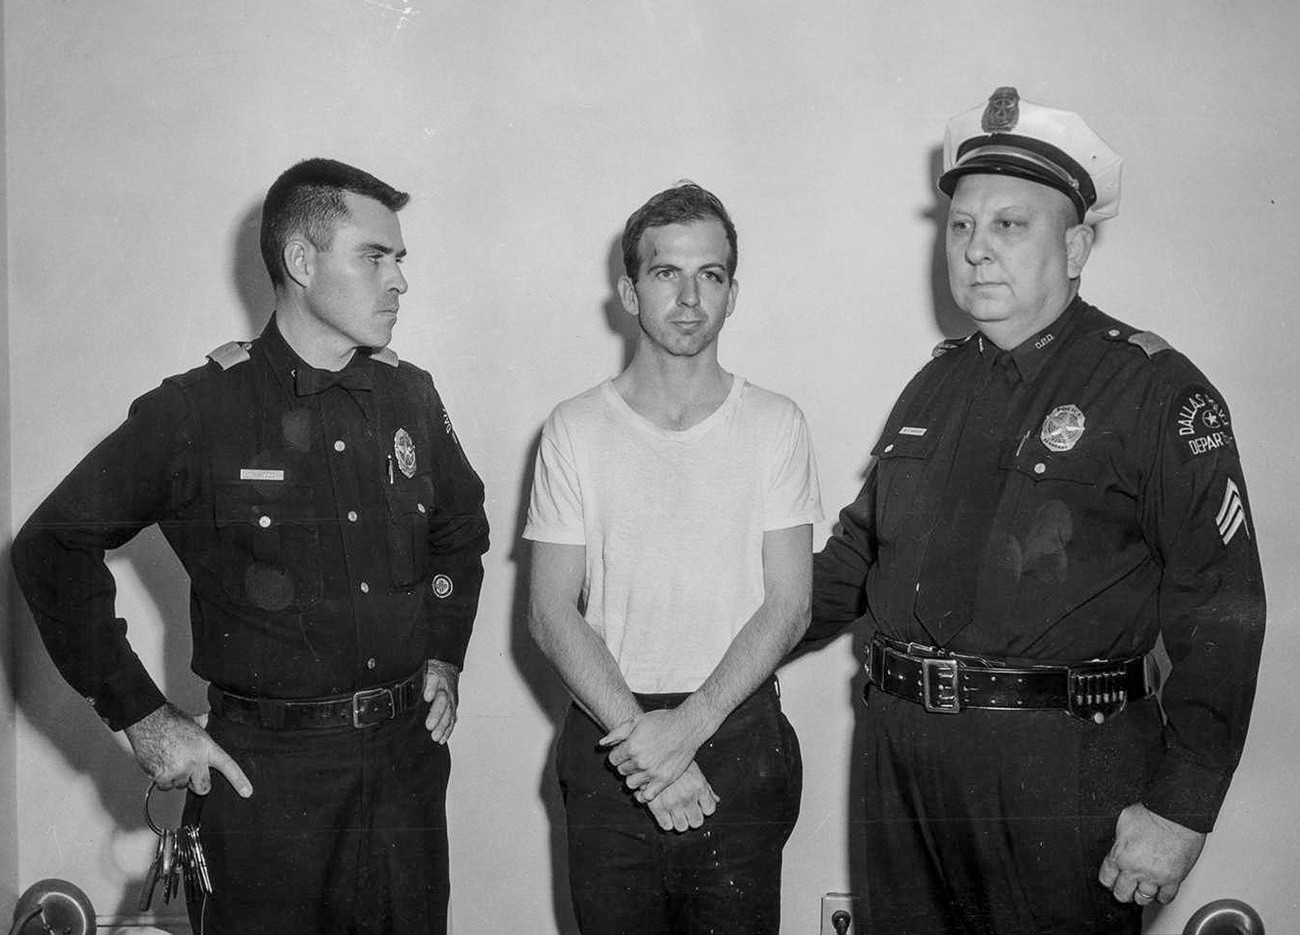 Dallas Police Department archive image shows accused Kennedy assassin Oswald standing with Dallas Police officers